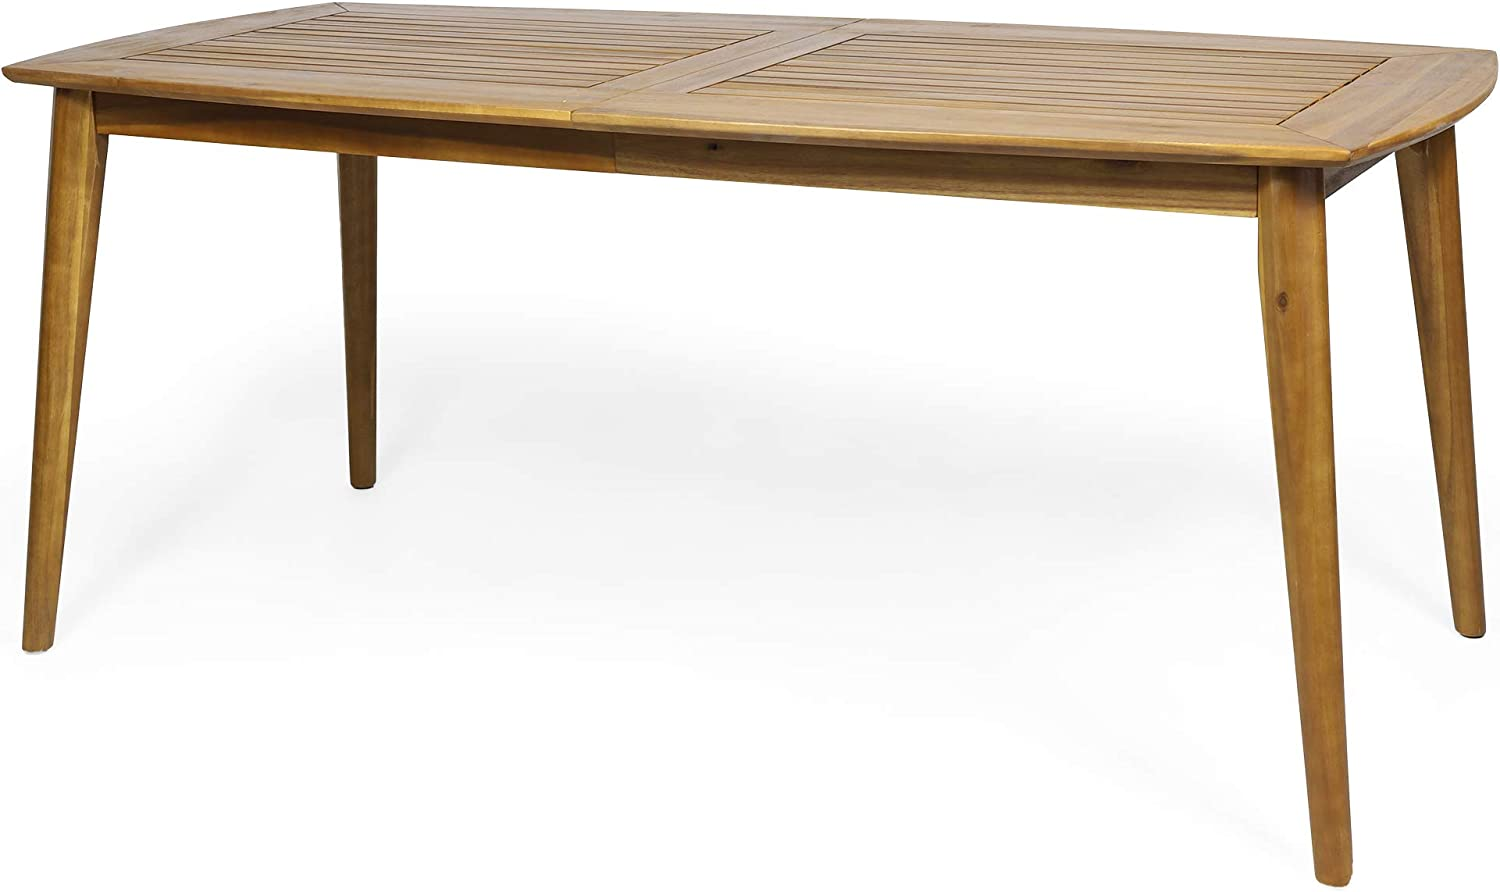 Christopher Knight Home 313208 Gwendolyn Outdoor Rustic Acacia Wood Dining Table, Teak